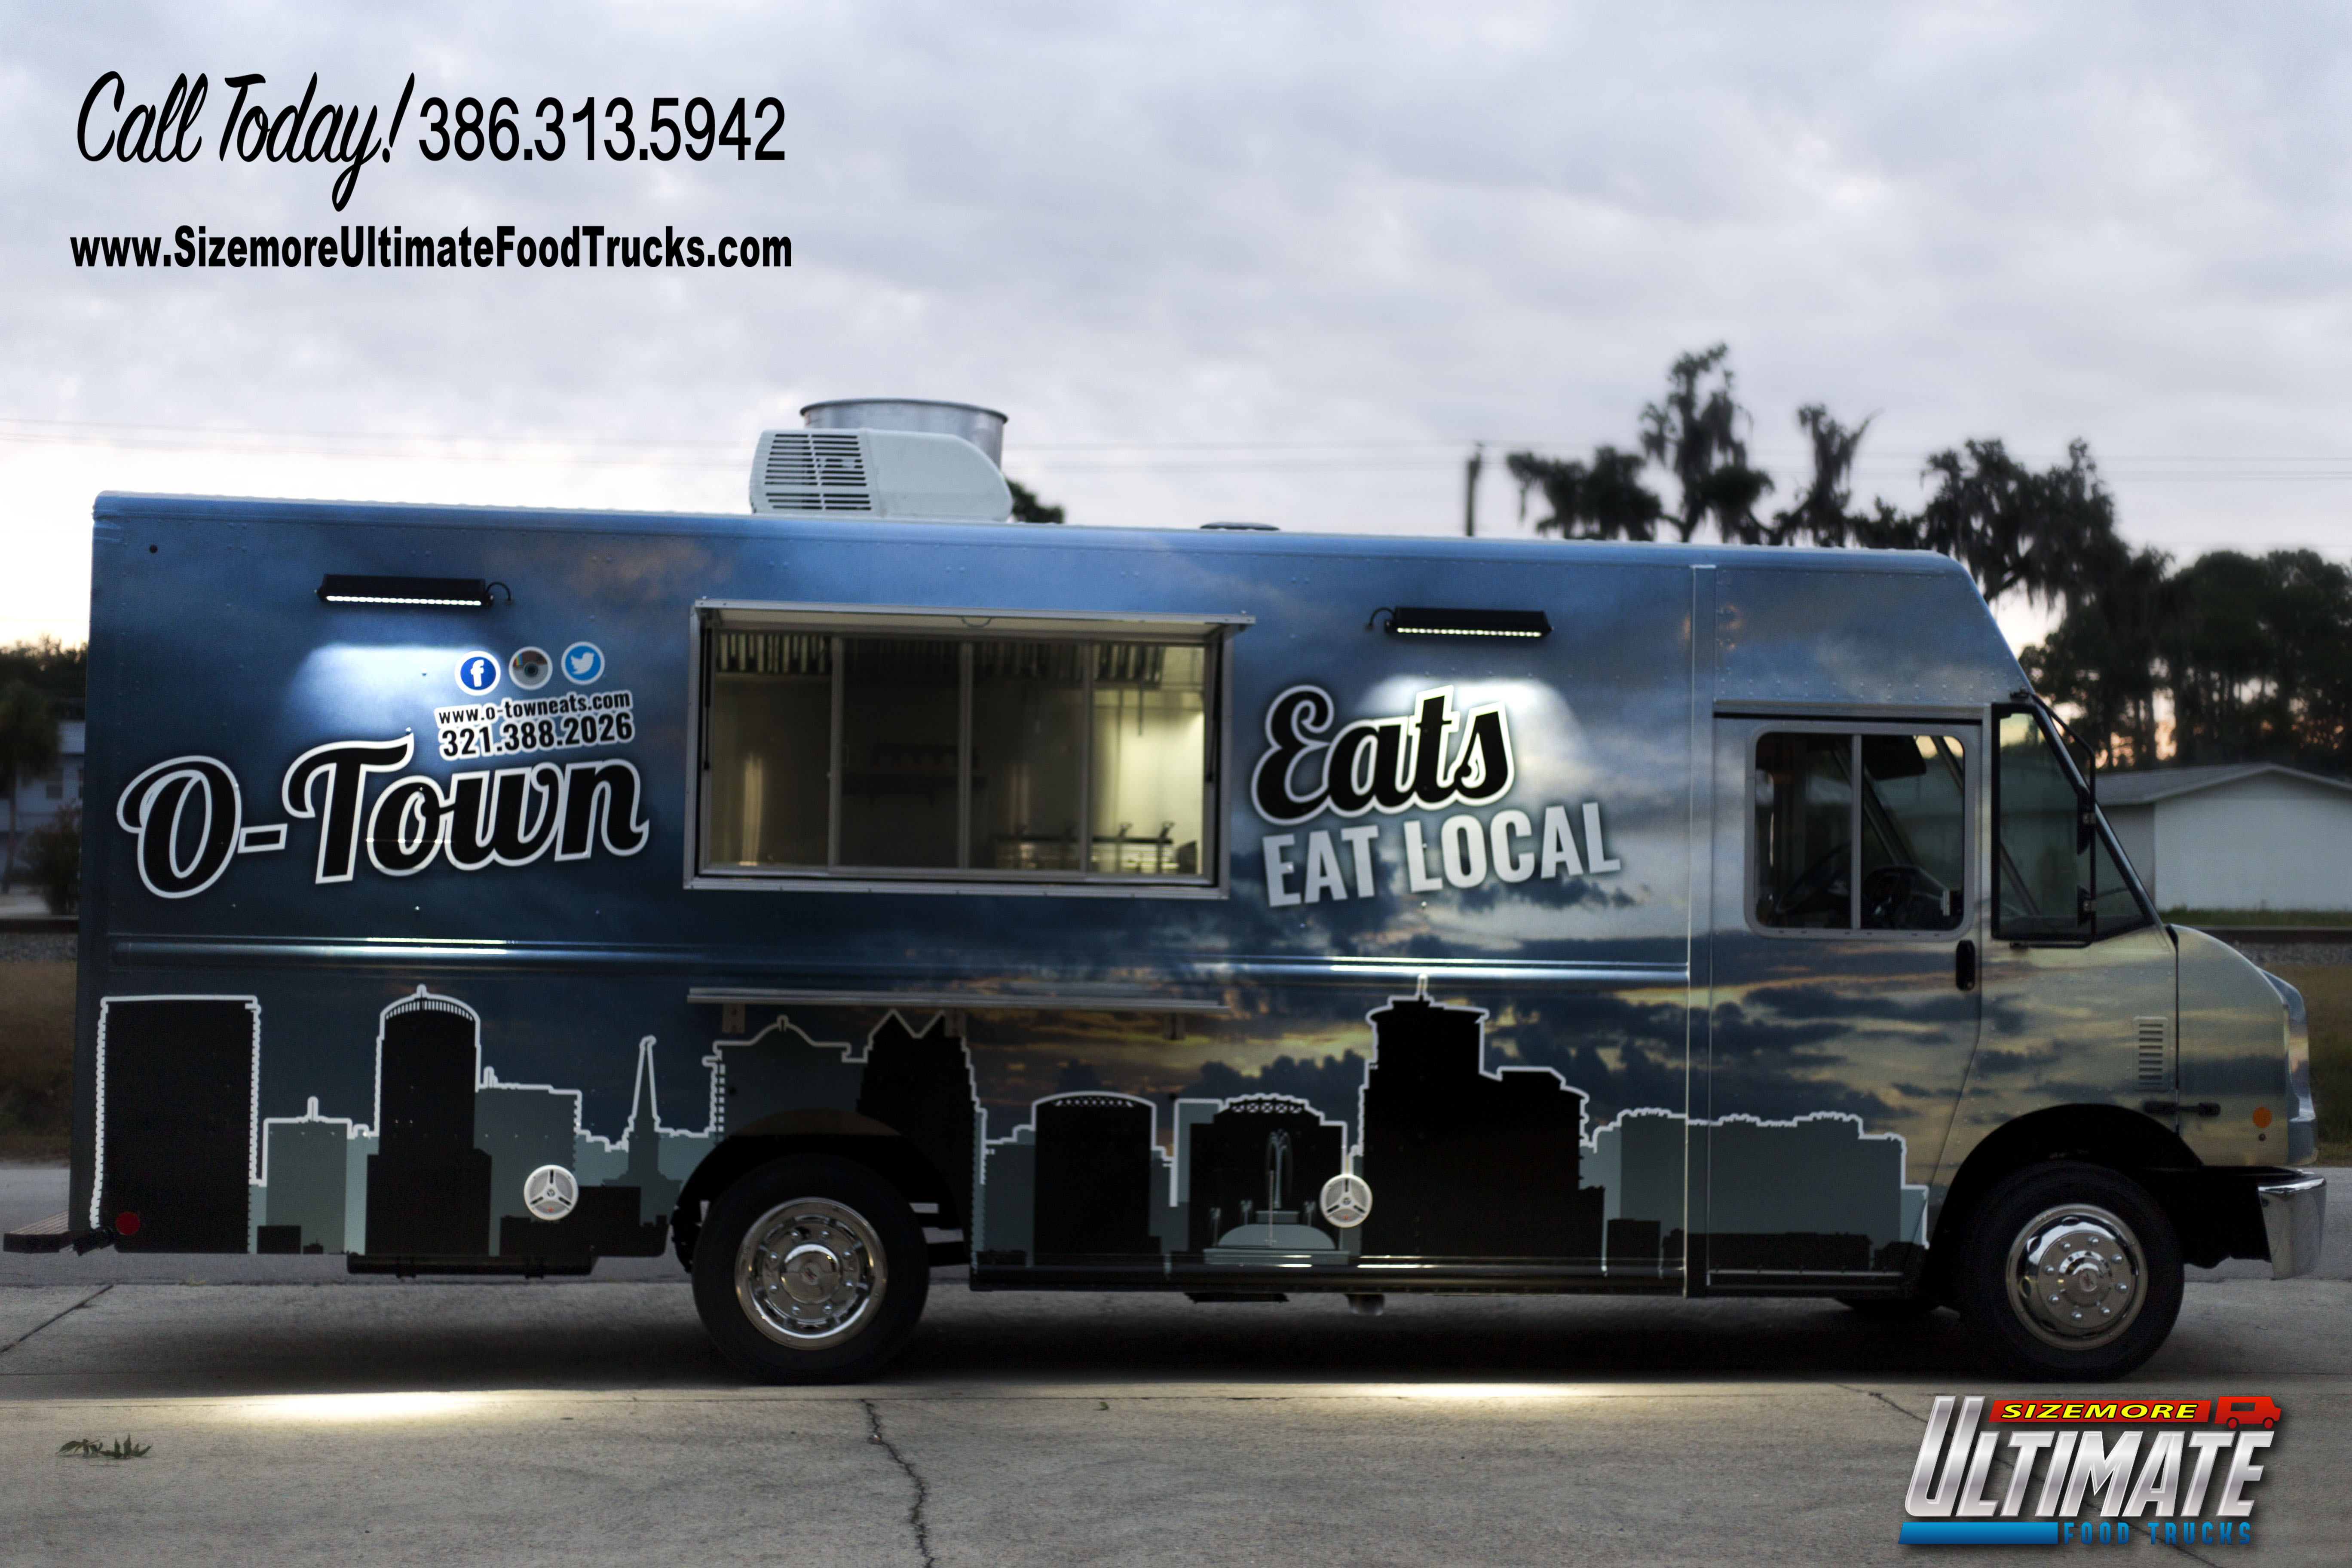 Custom ice cream trucks for sale in fl autos post for Design your own food truck online